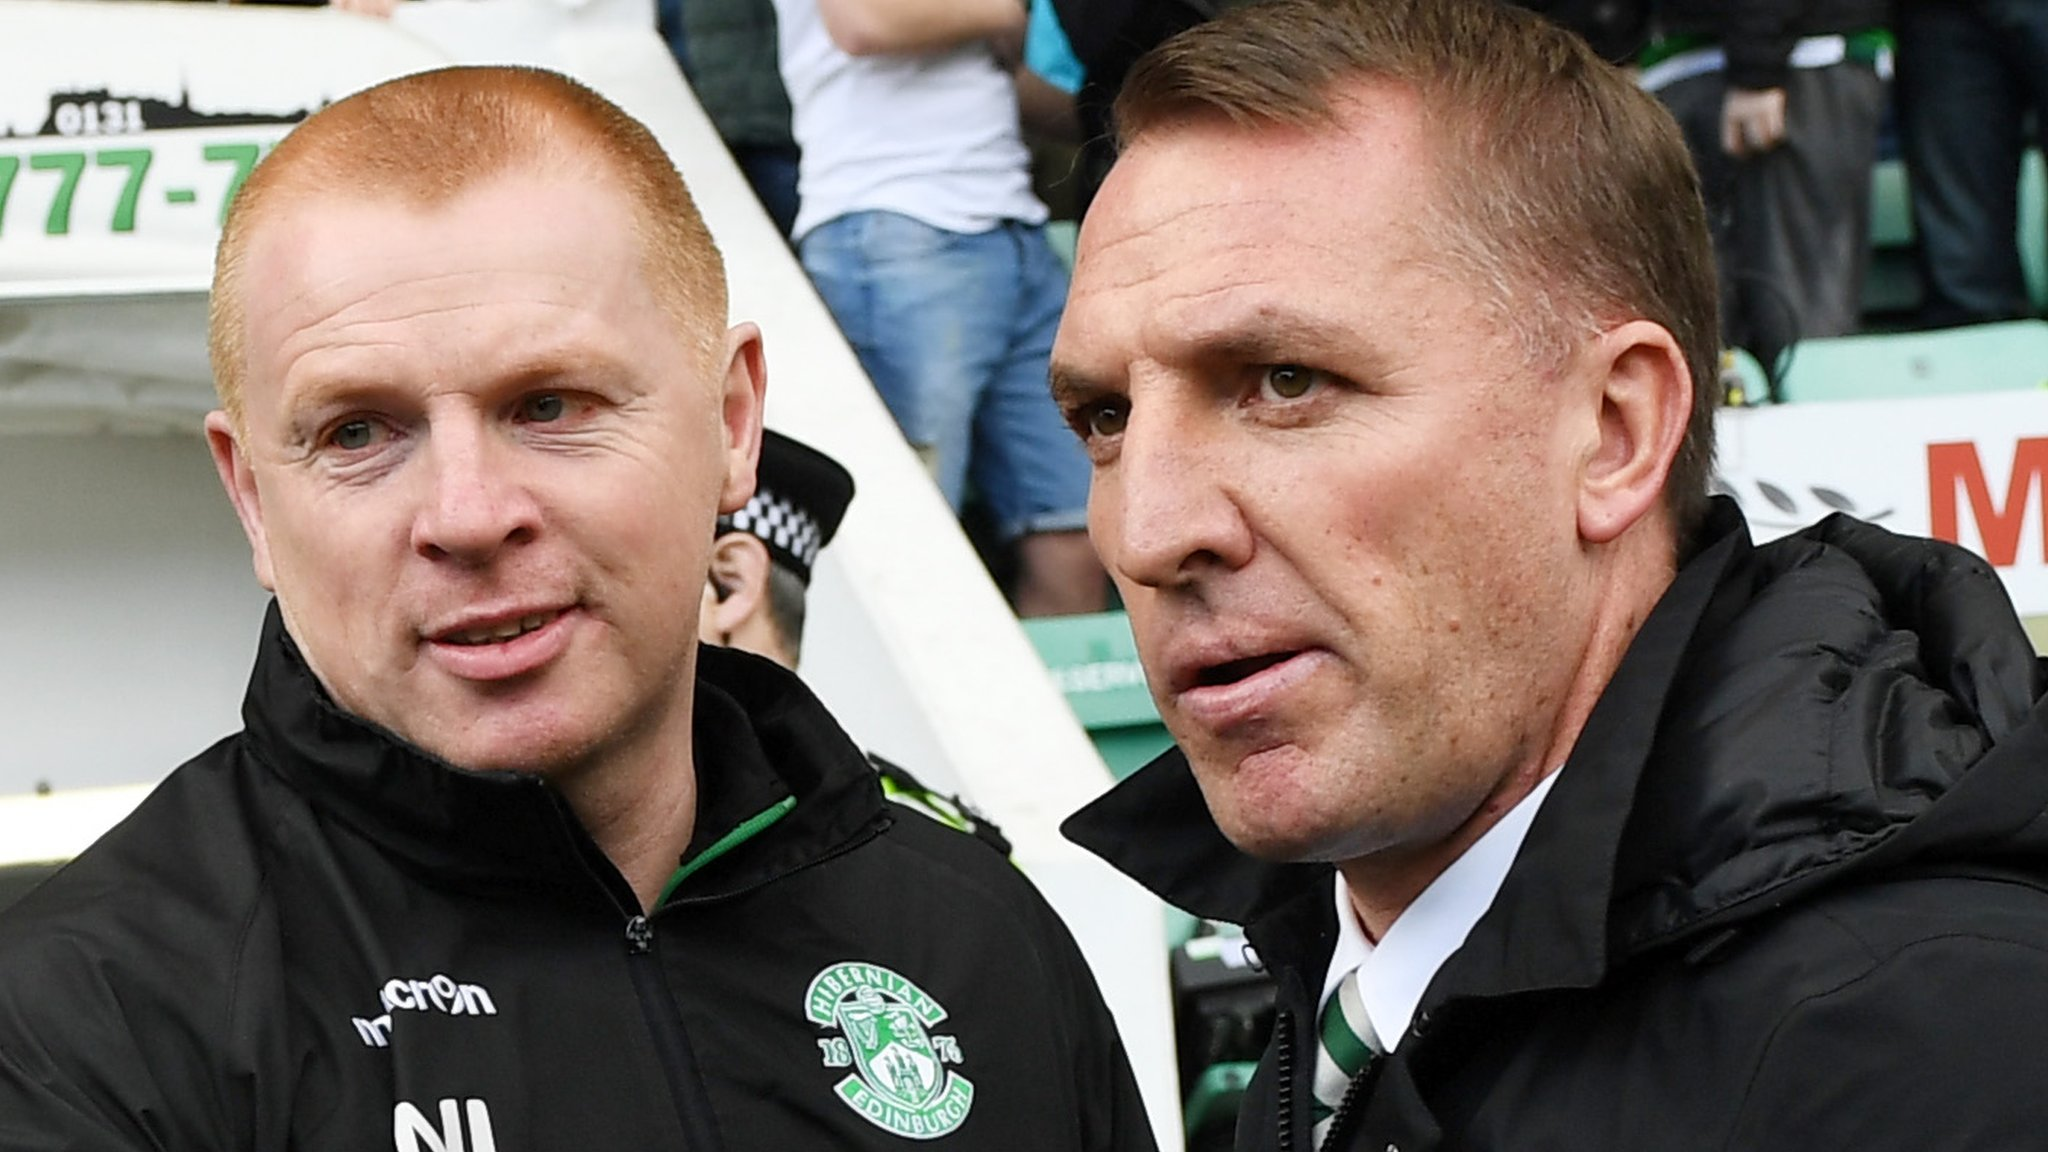 Neil Lennon defends Celtic performances under his charge